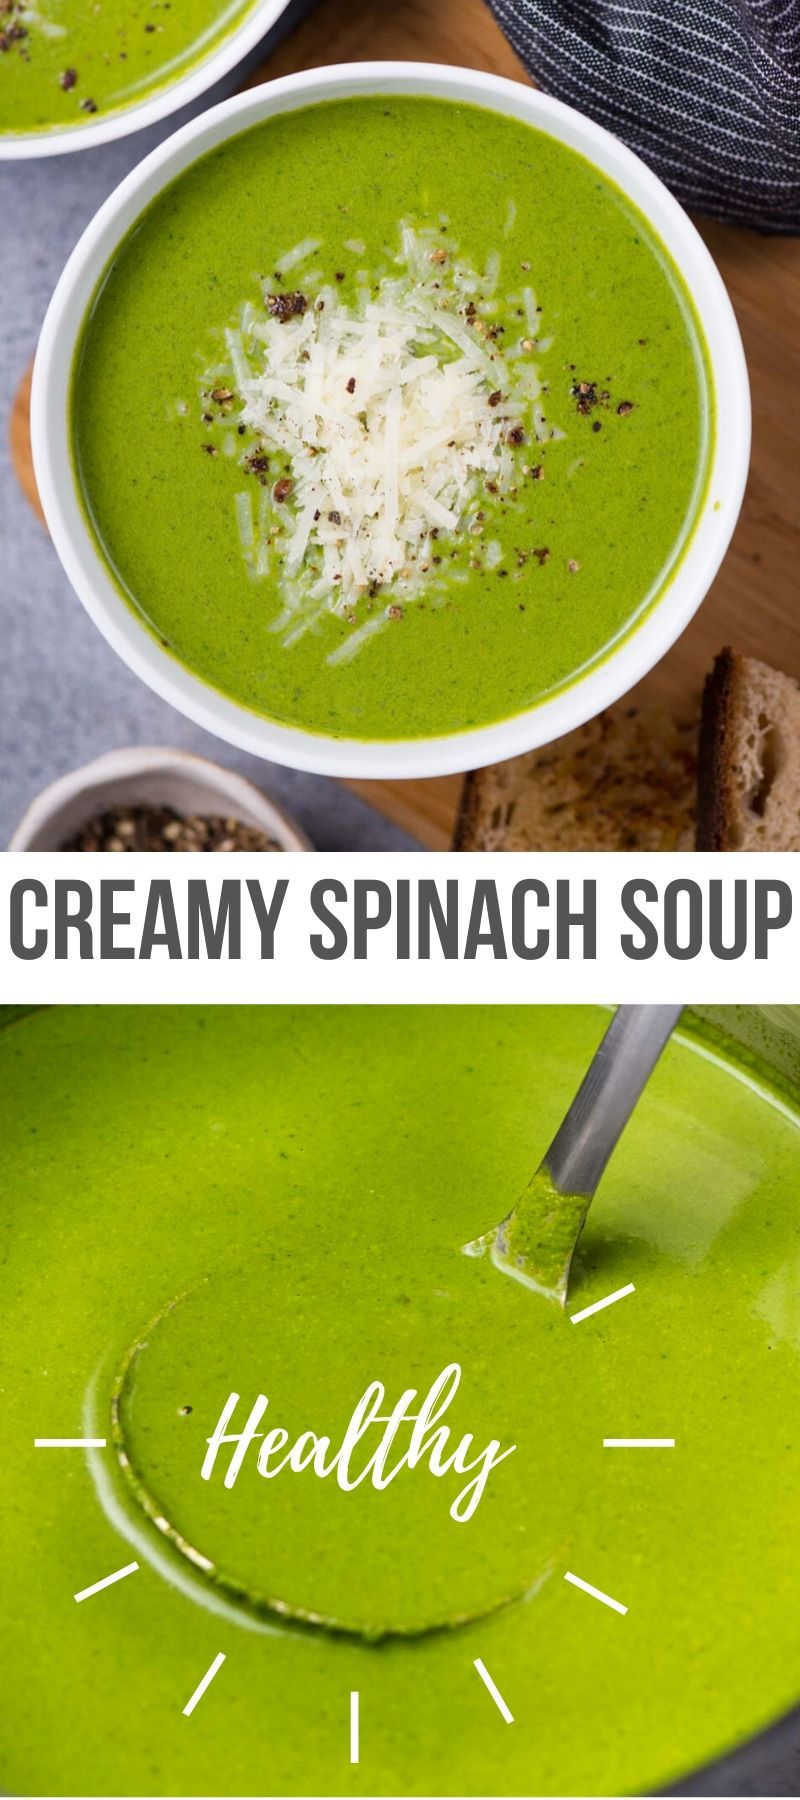 CREAMY SPINACH SOUP - The flavours of kitchen